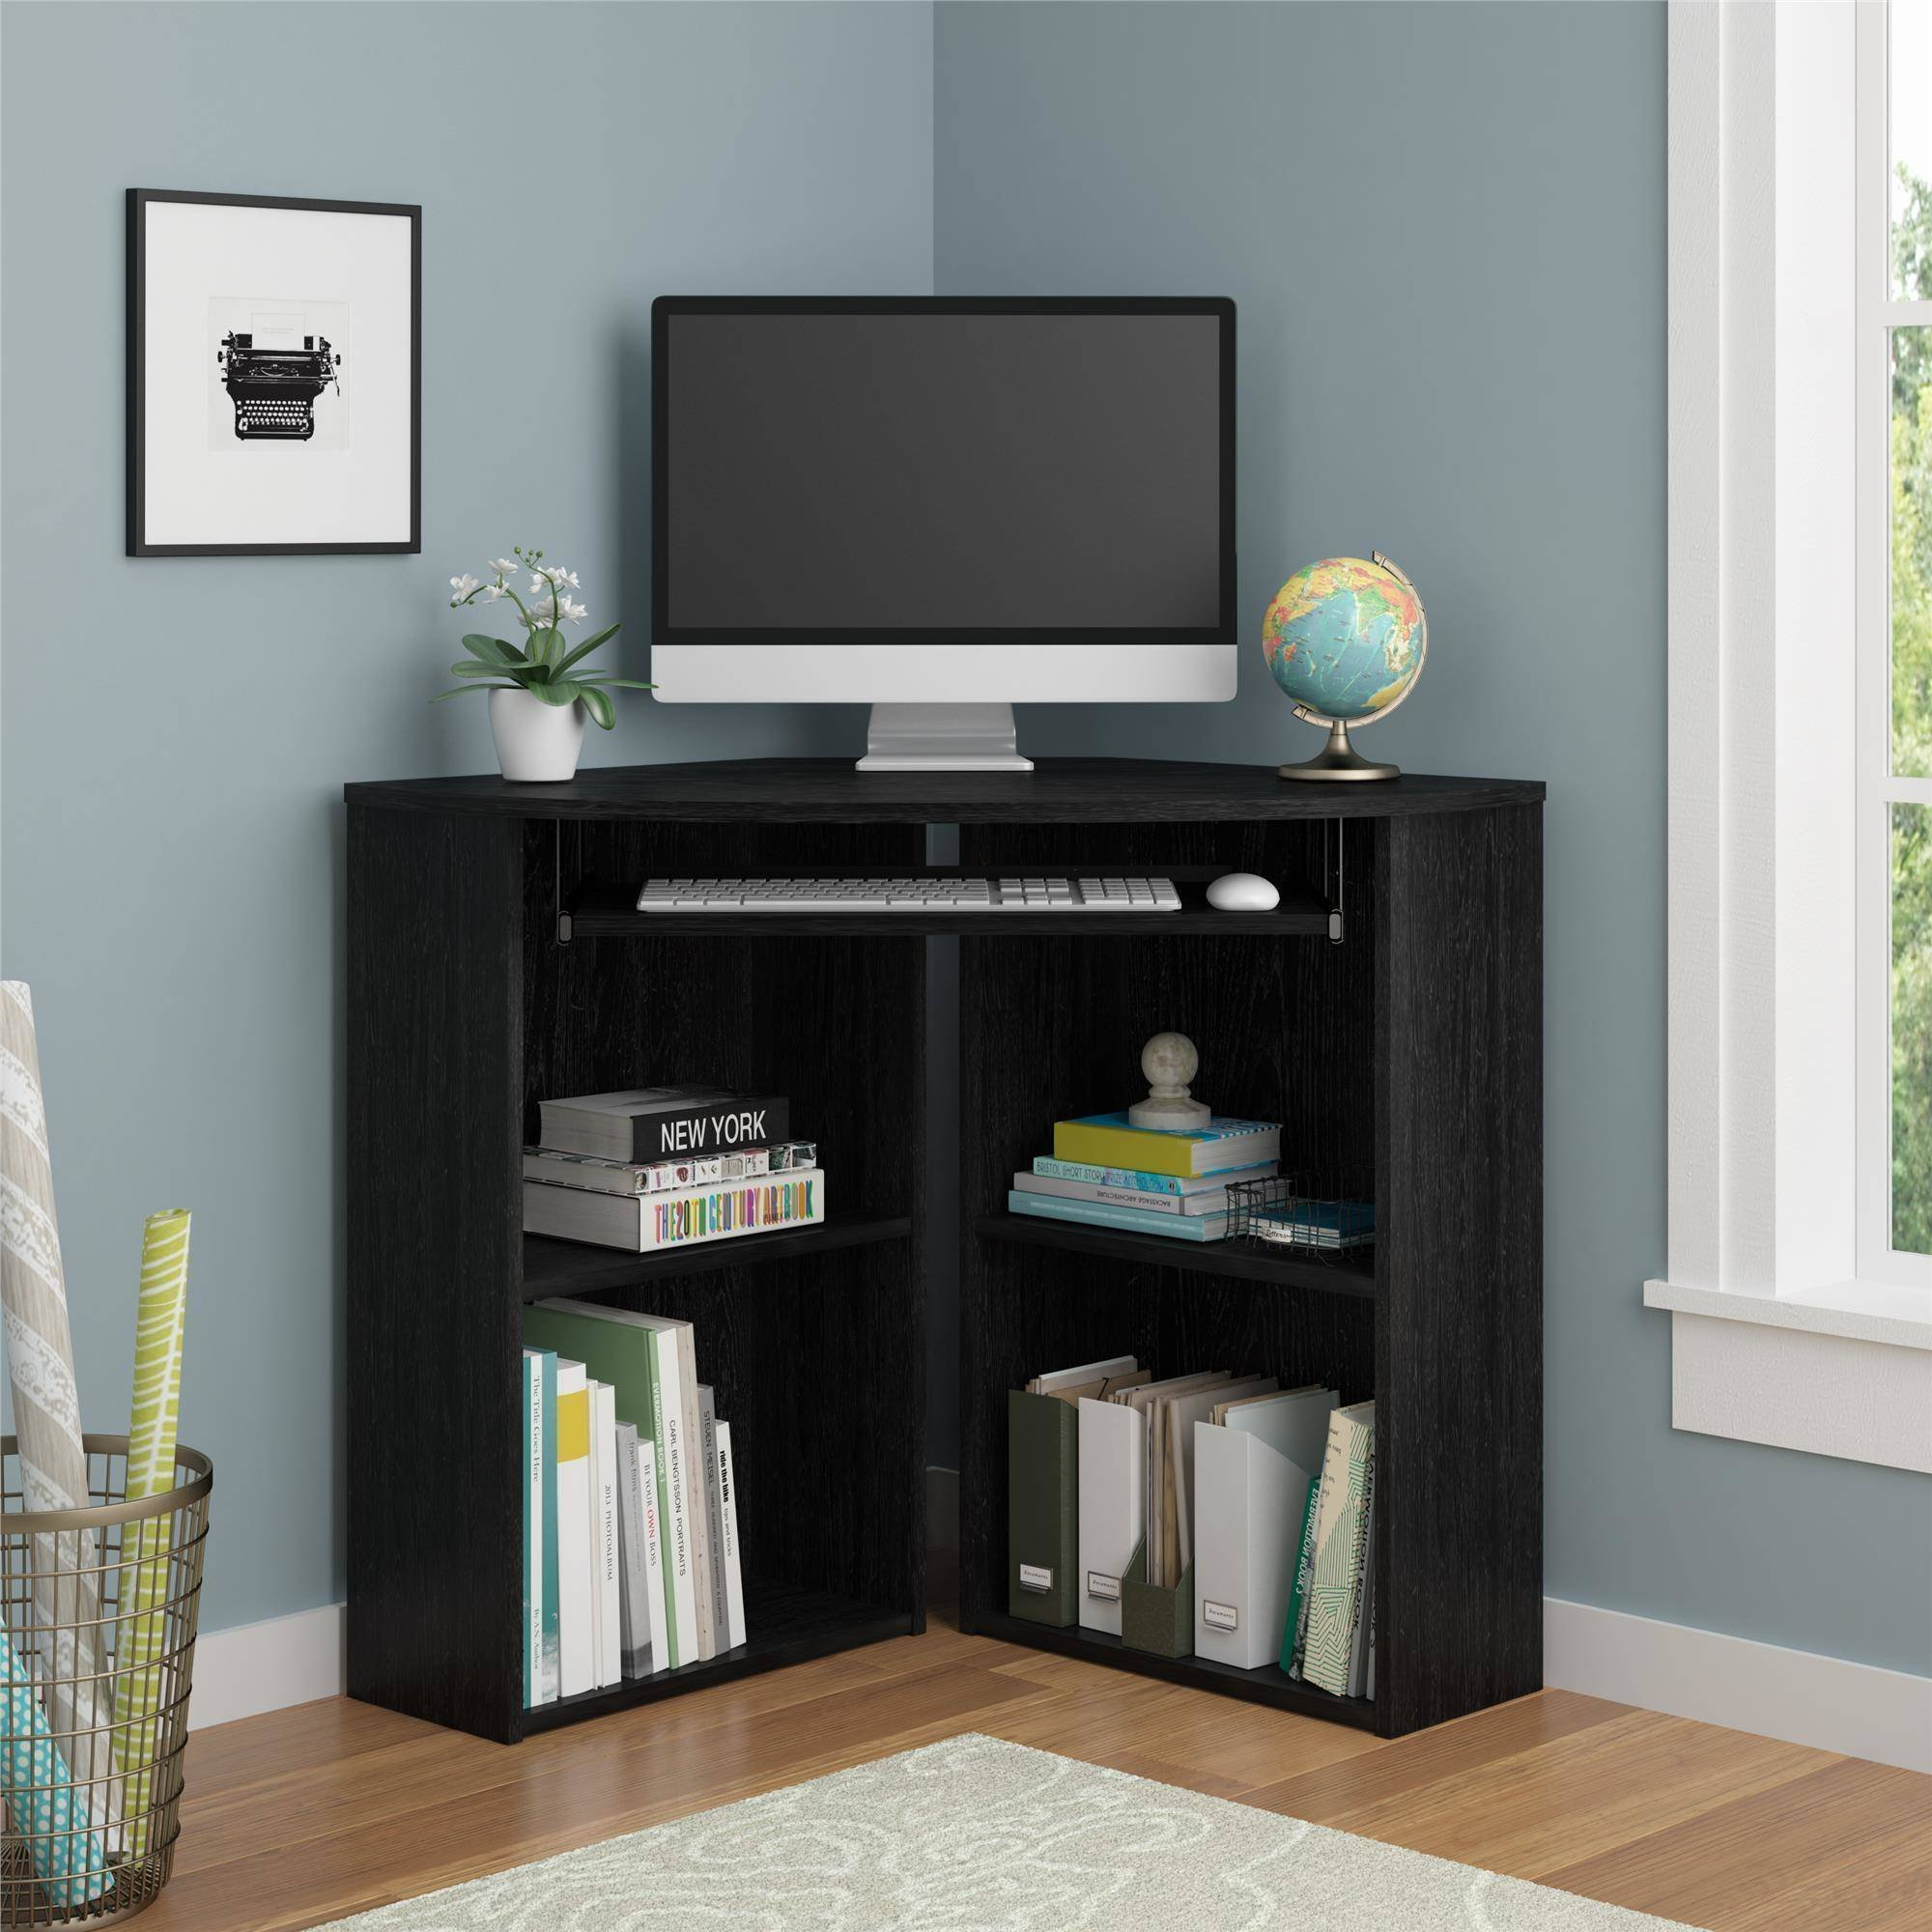 Space Saving Wooden Corner Desk Furniture with Large Space Workstation and 4 Wide Storage Decks, Great Organizer for Studying at Home, Available Black Finish (L: 39.69 x W: 39.60 x H: 30.10 Inches)